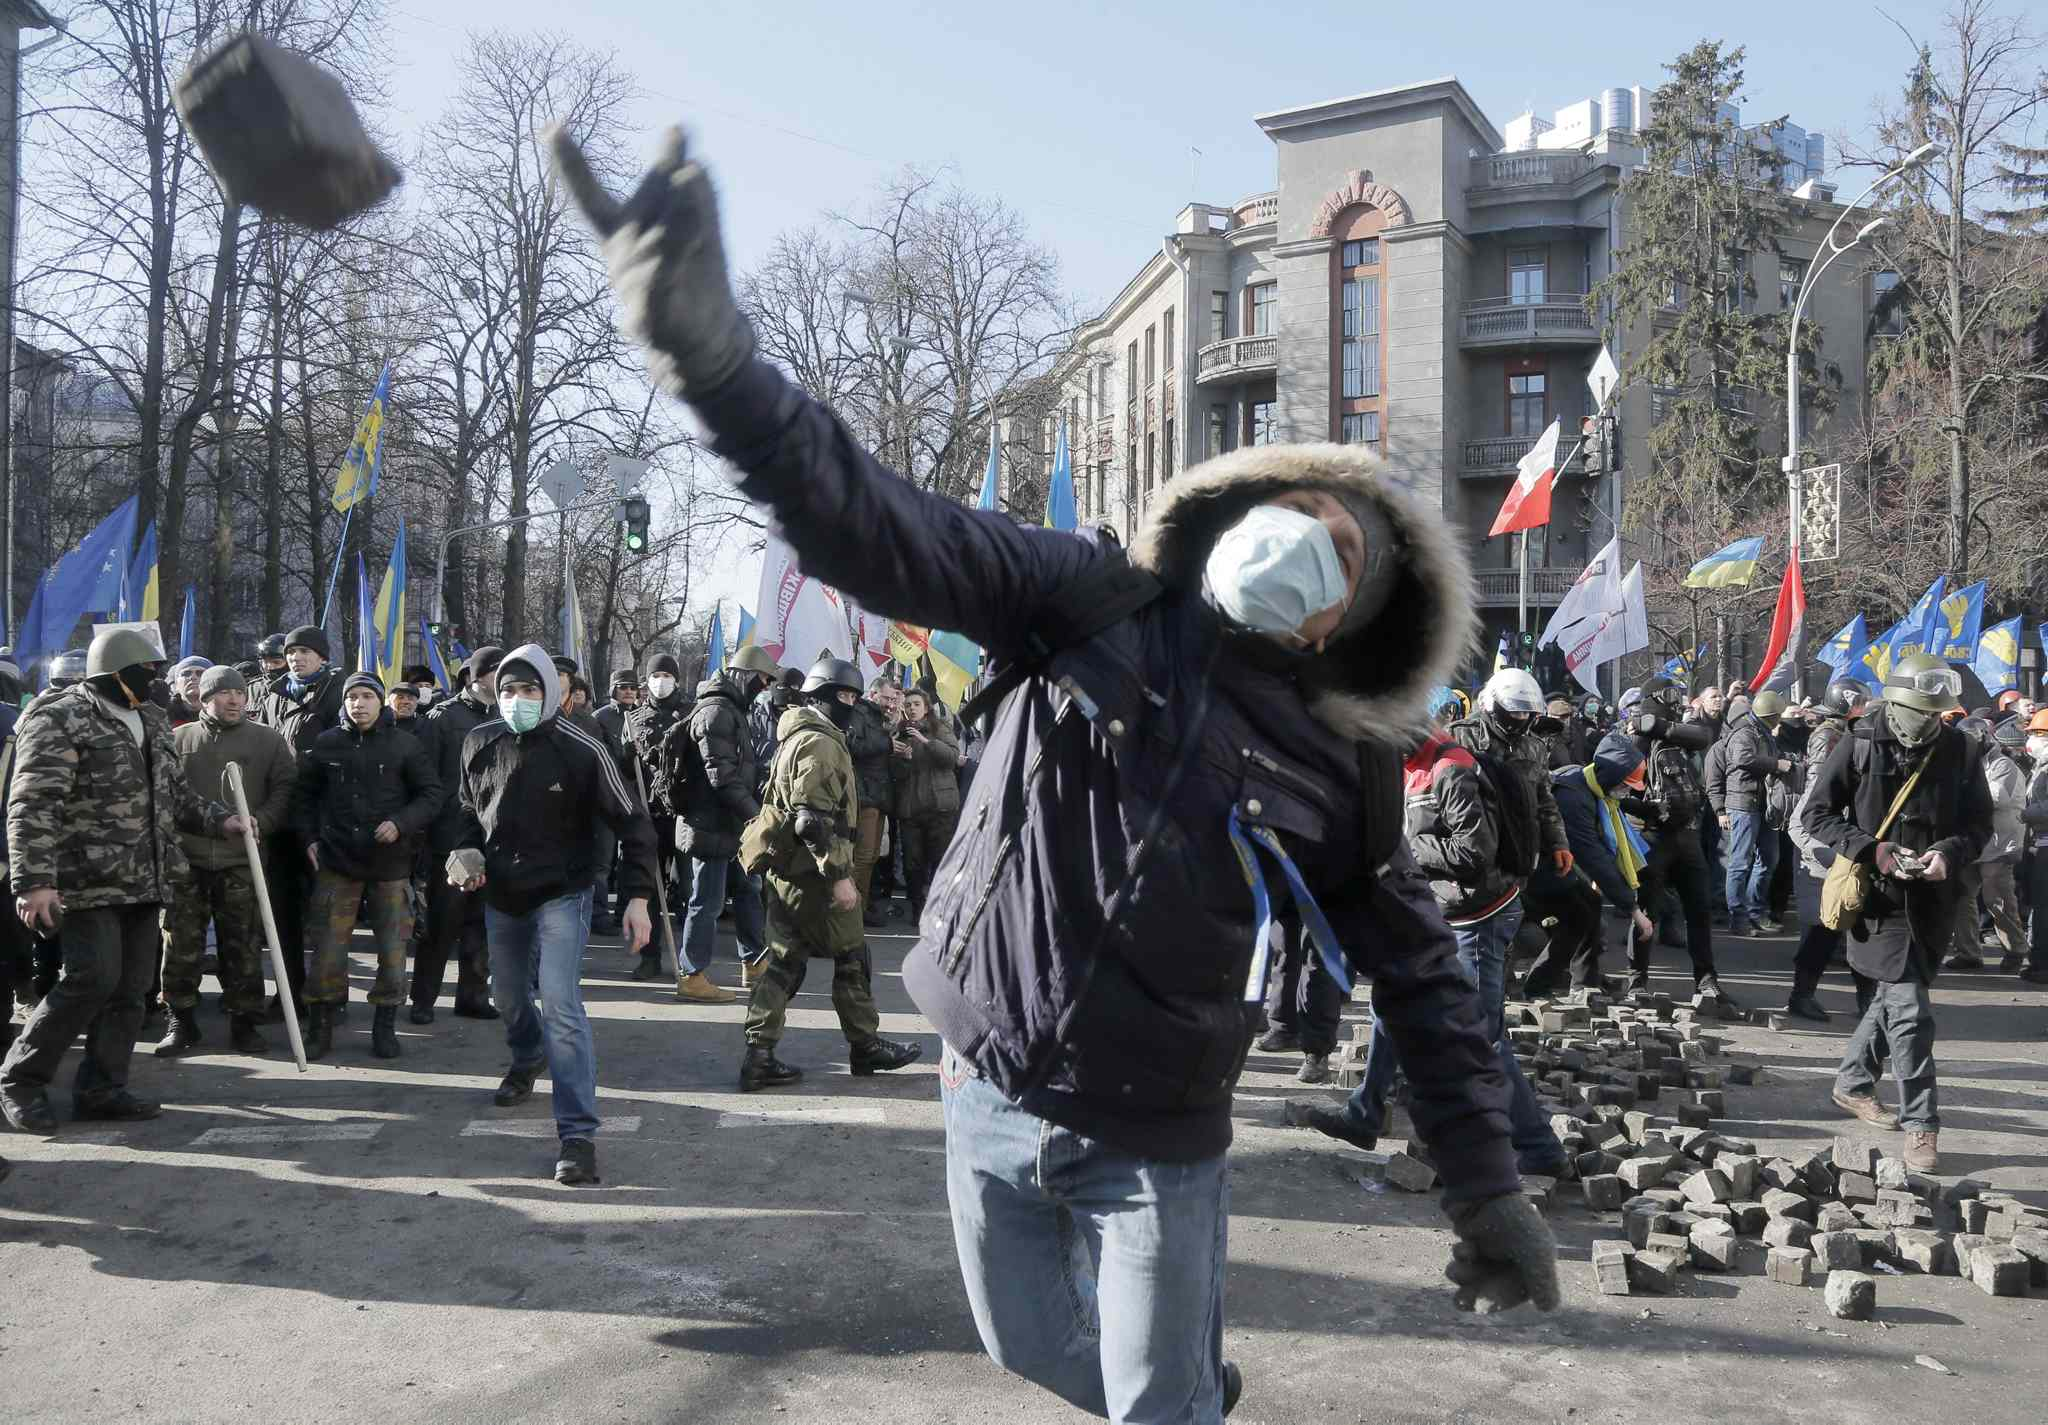 An anti-government protester throws a stone during clashes with riot police outside Ukraine's parliament in Kyiv, Ukraine, on Tuesday. Thousands of angry anti-government protesters clashed with police in a new eruption of violence following new maneuvering by Russia and the European Union to gain influence over this former Soviet republic.